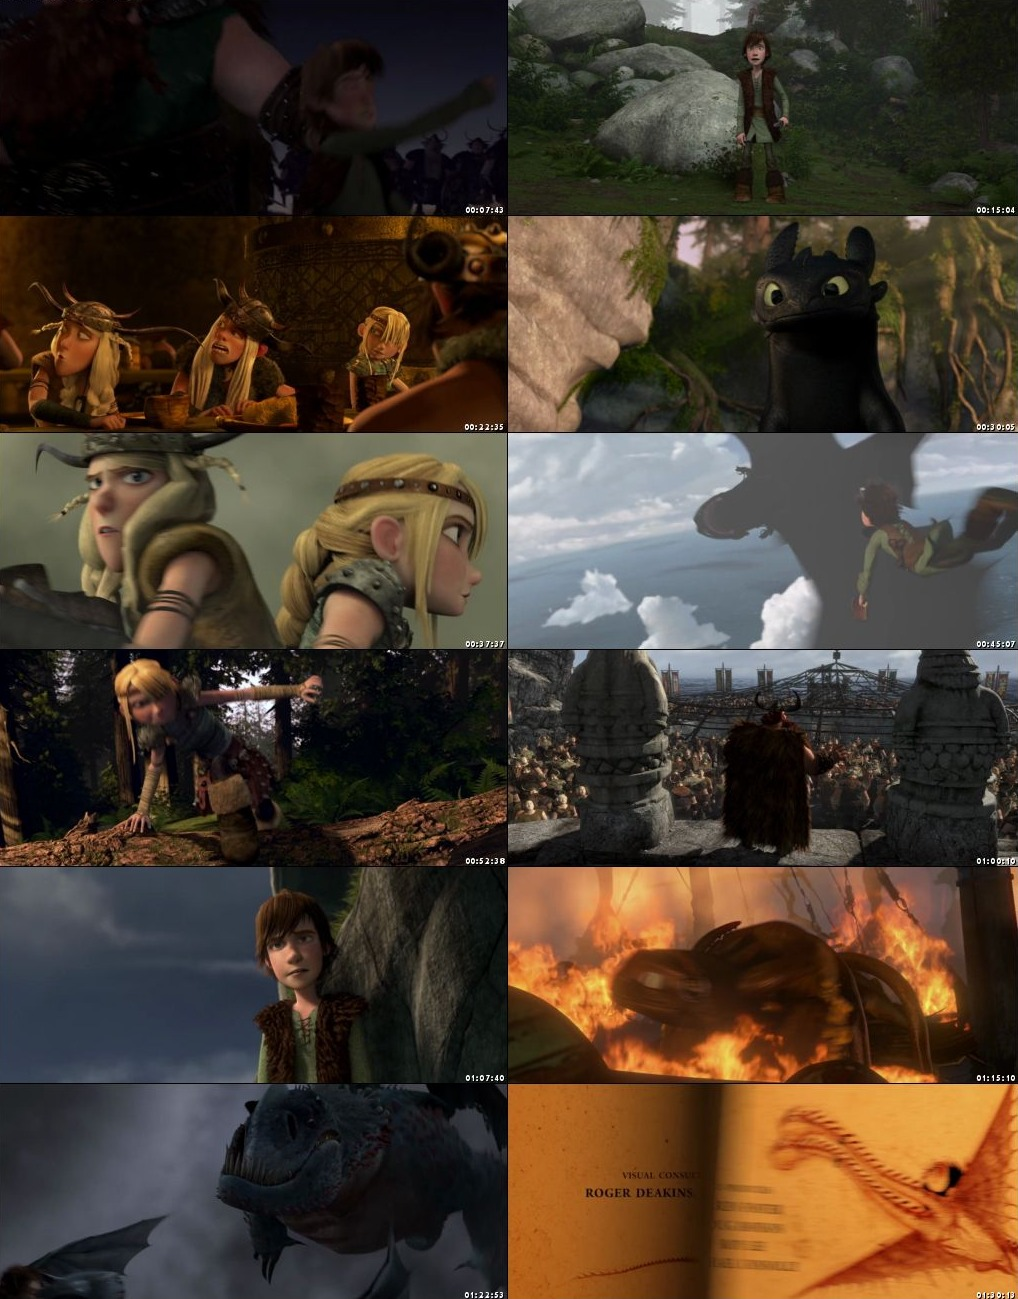 How to train your dragon 2010 full movie download 1080p dual audio how to train your dragon 2010 how to train your dragon 2010 hindi dubbed how to train your dragon 2010 hindi dubbed download ccuart